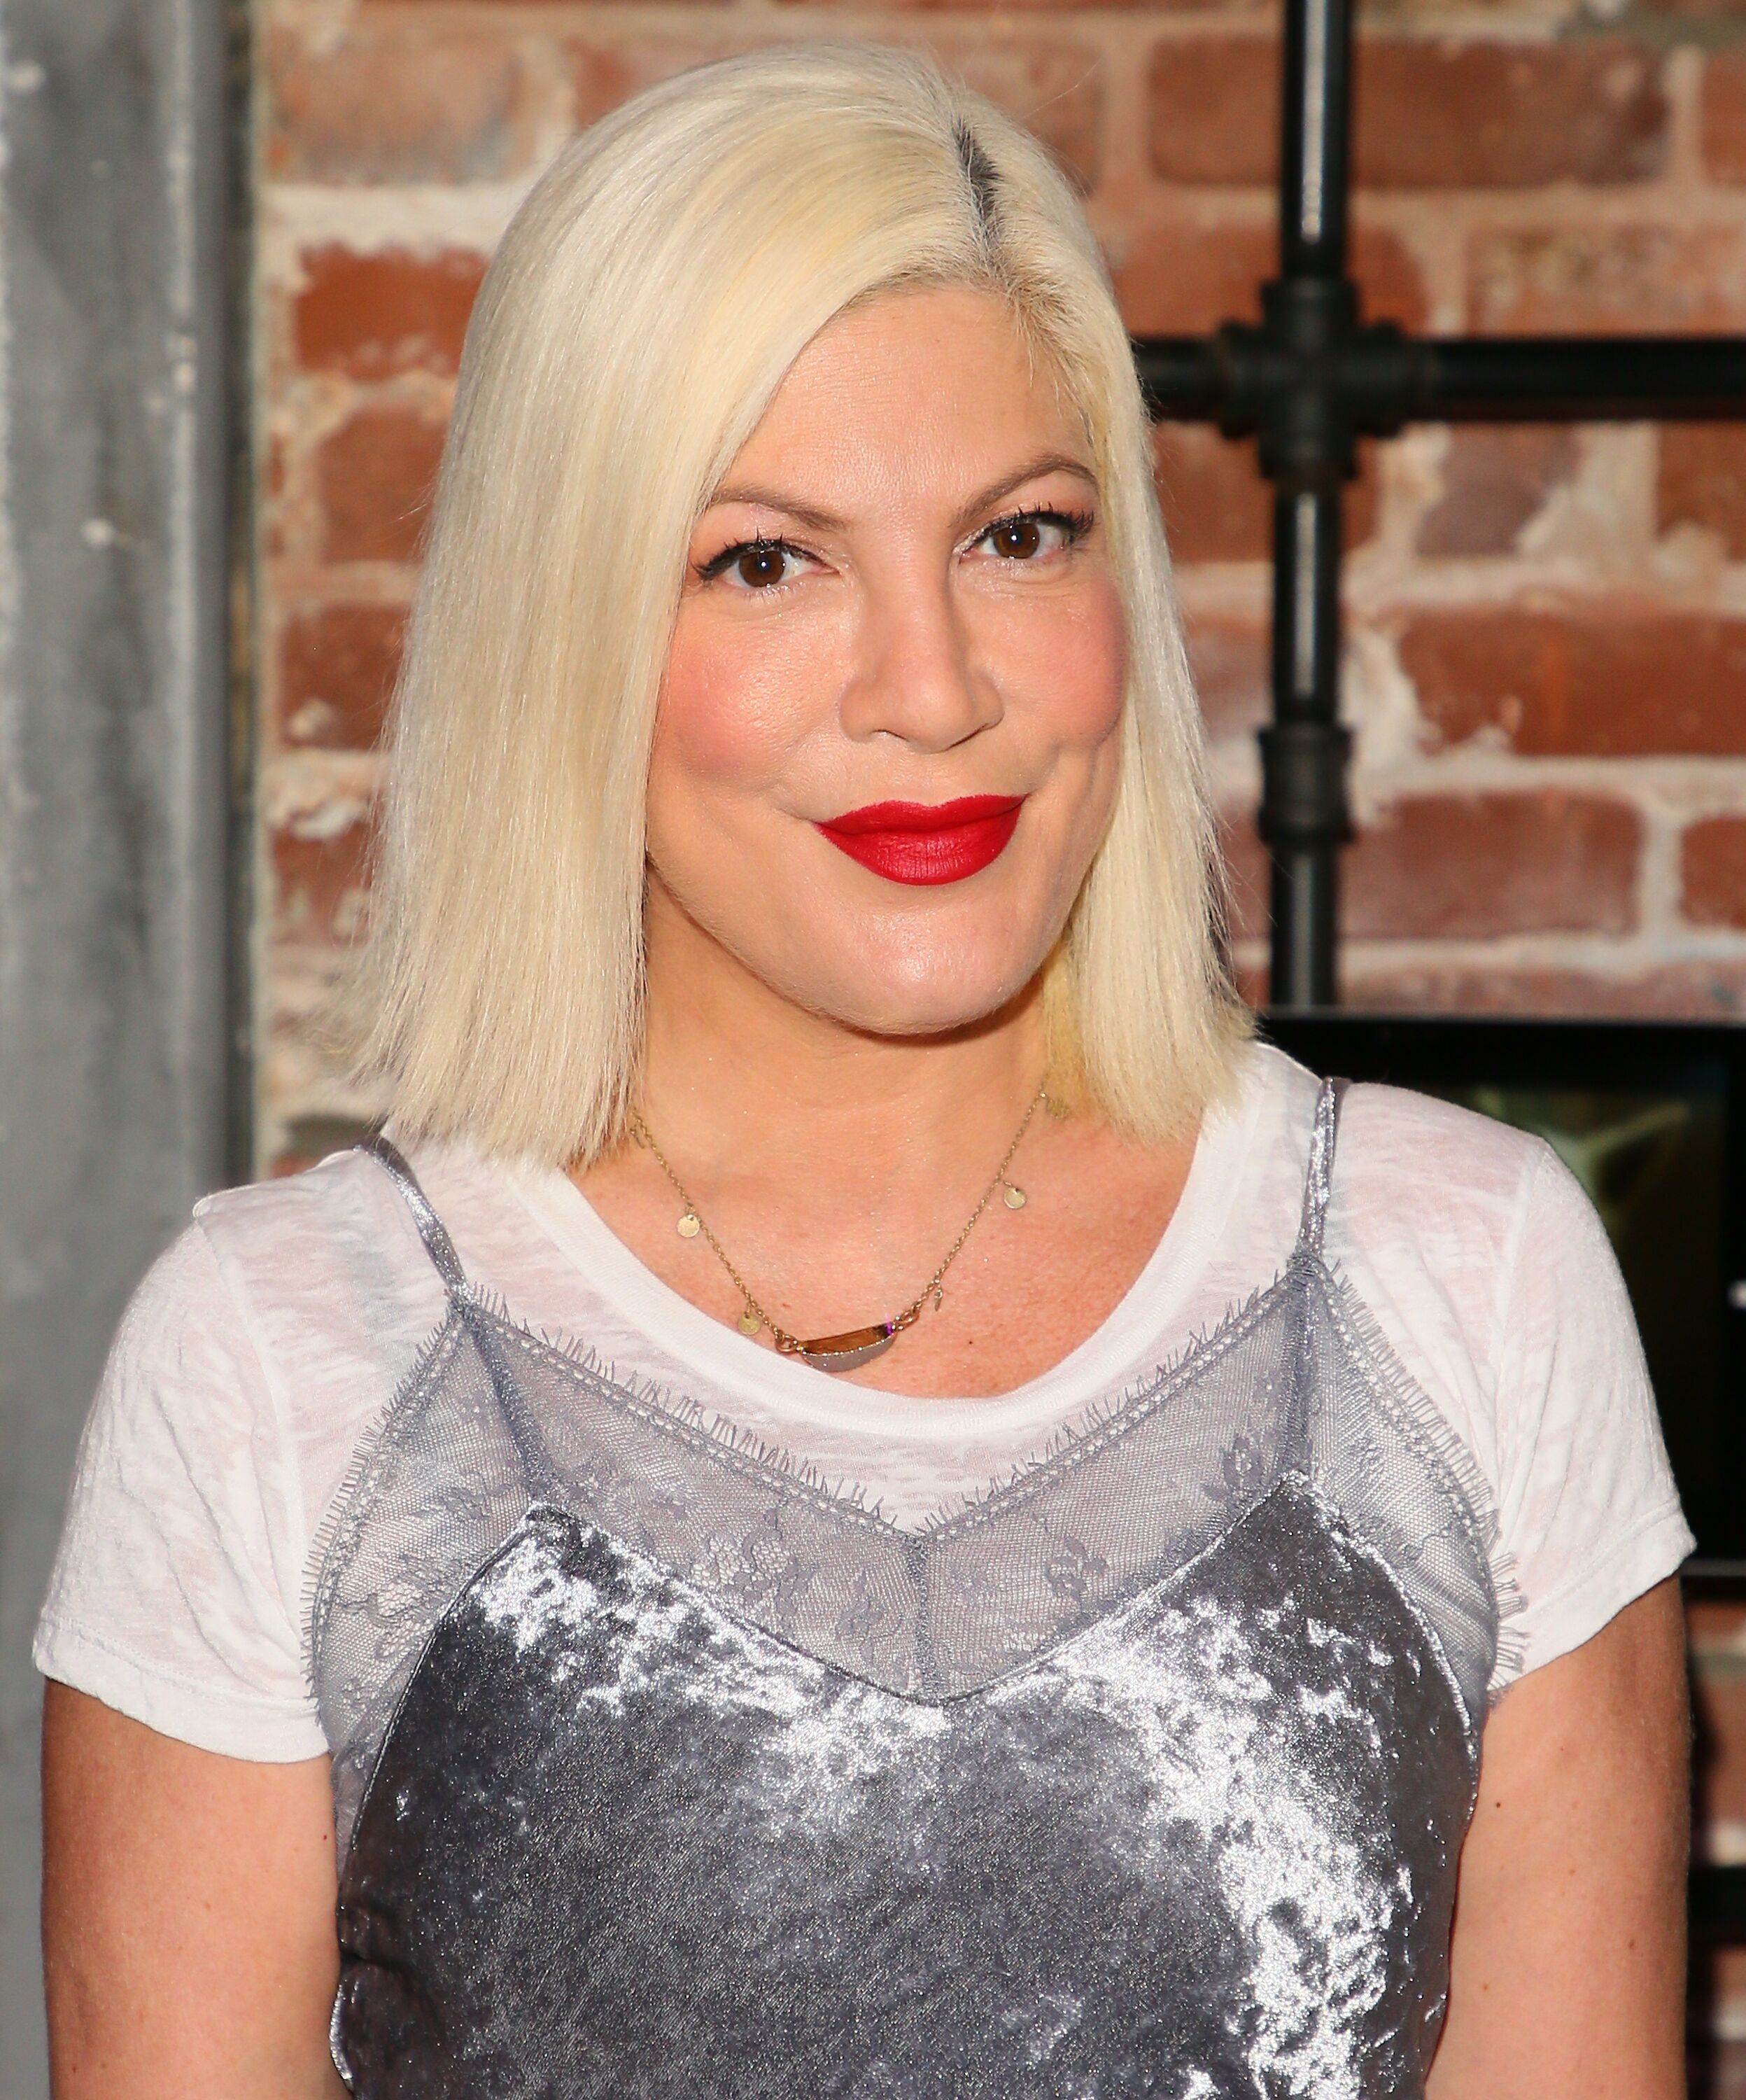 Tori Spelling attends an Animal Rescue celebrity fundraiser event on October 07, 2017 | Photo: Getty Images